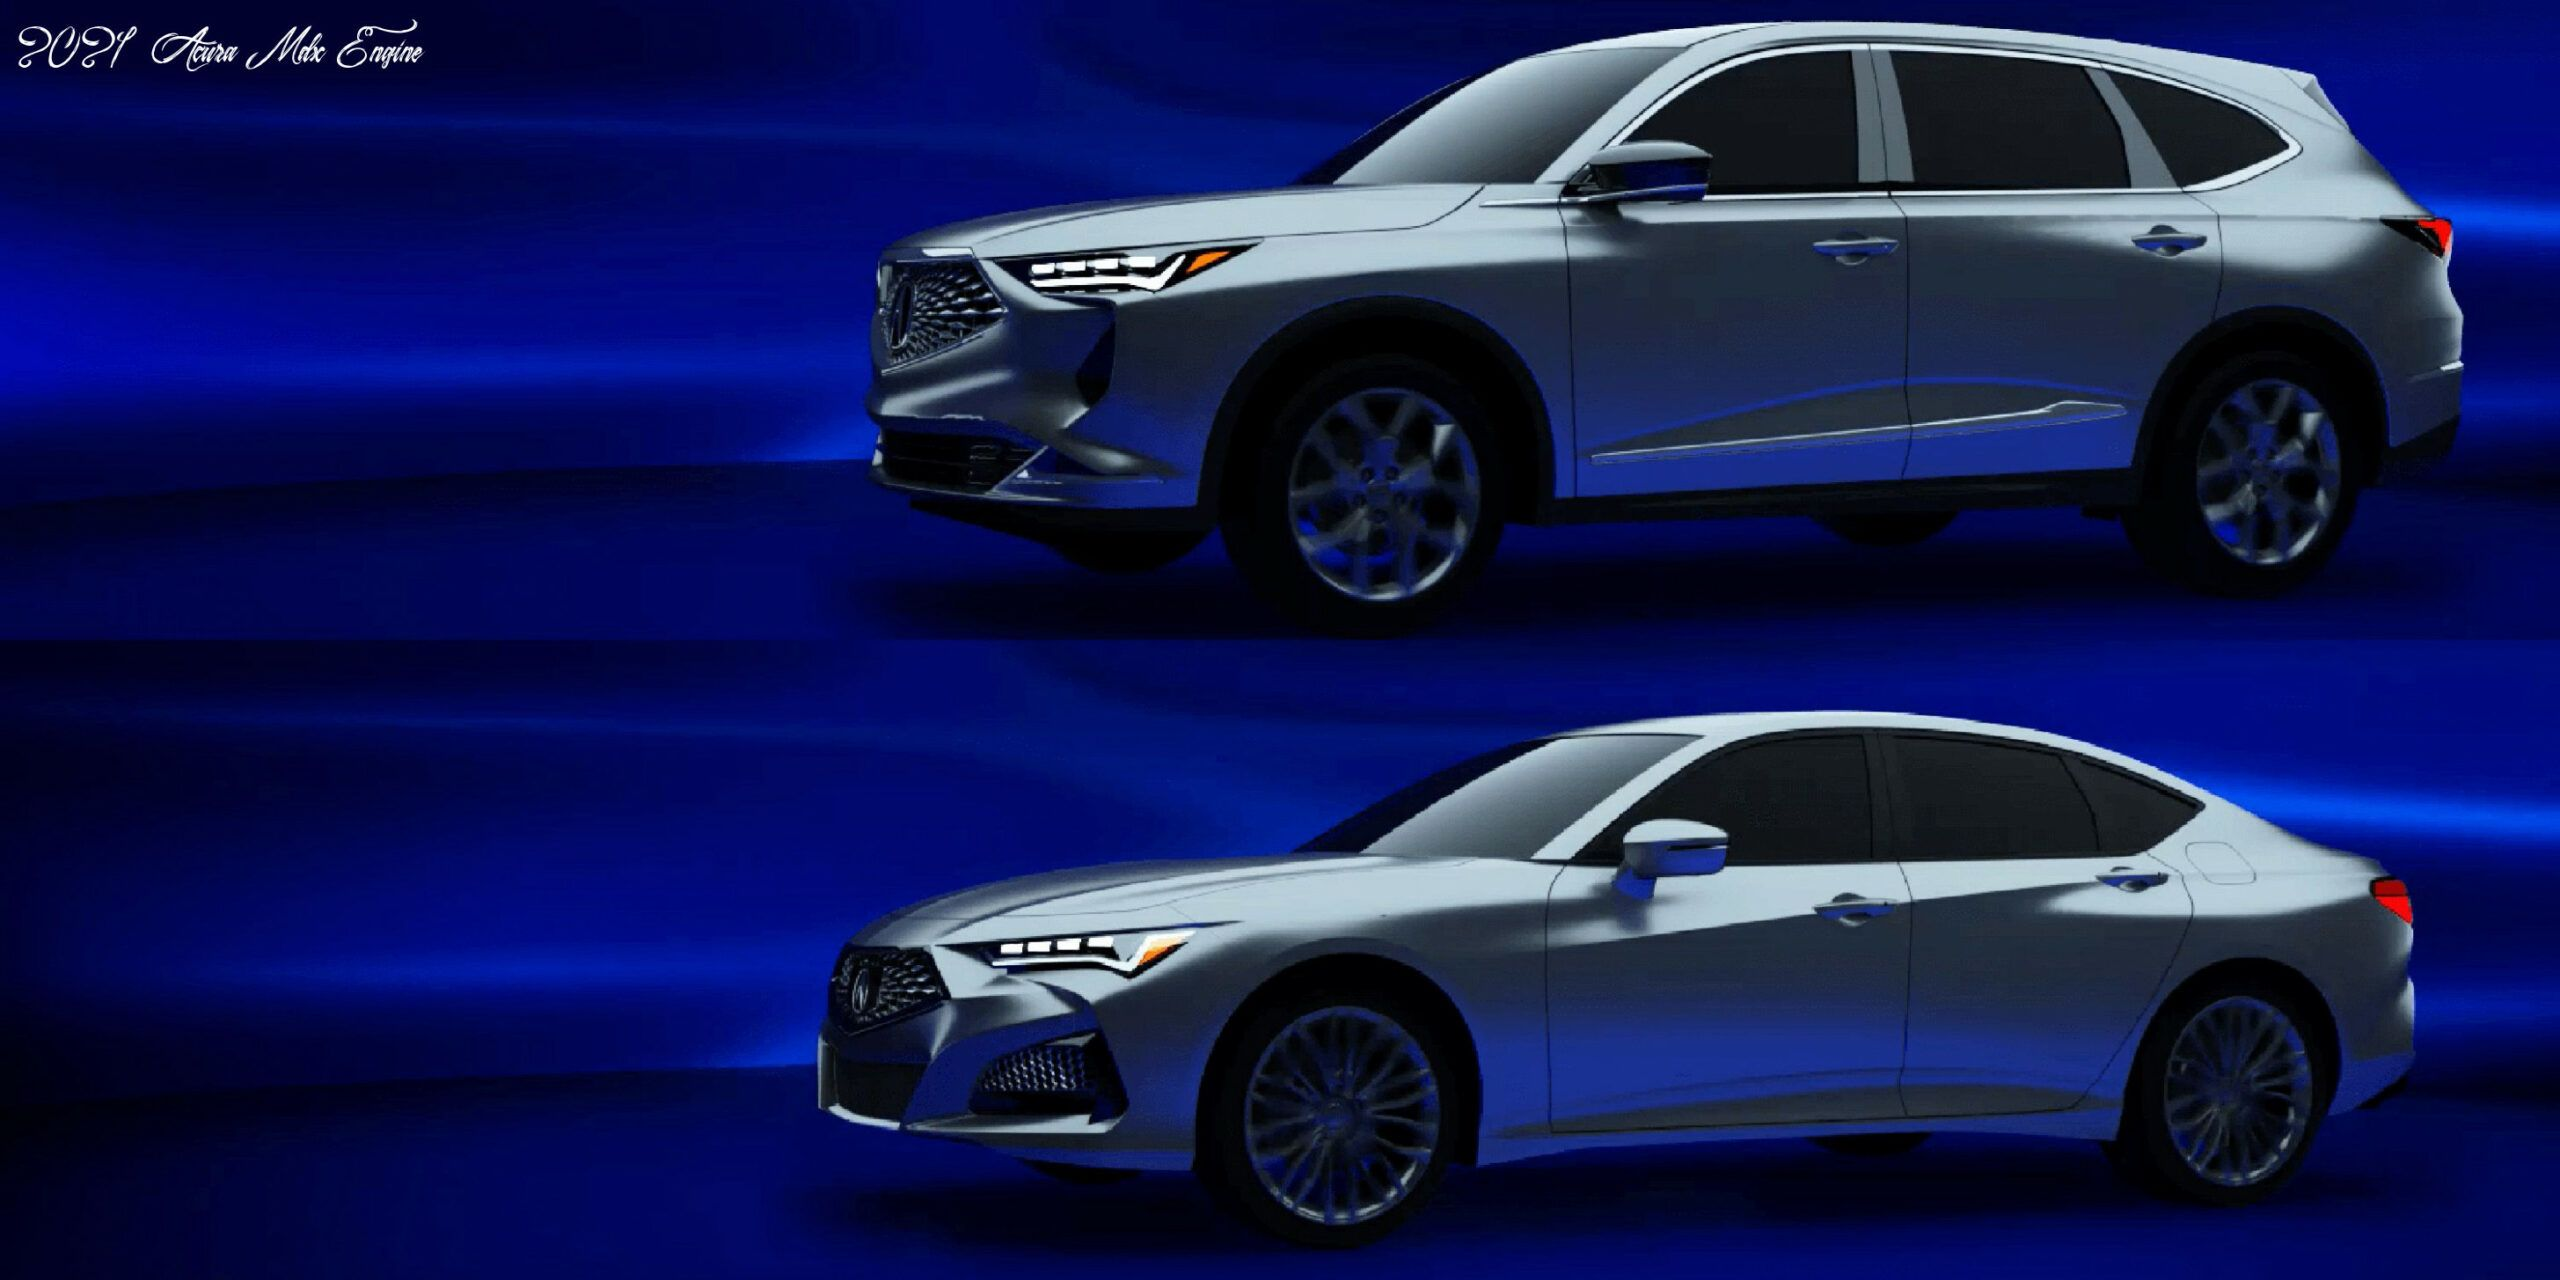 2021 Acura Mdx Engine Reviews In 2020 Acura Mdx Acura Acura Tl